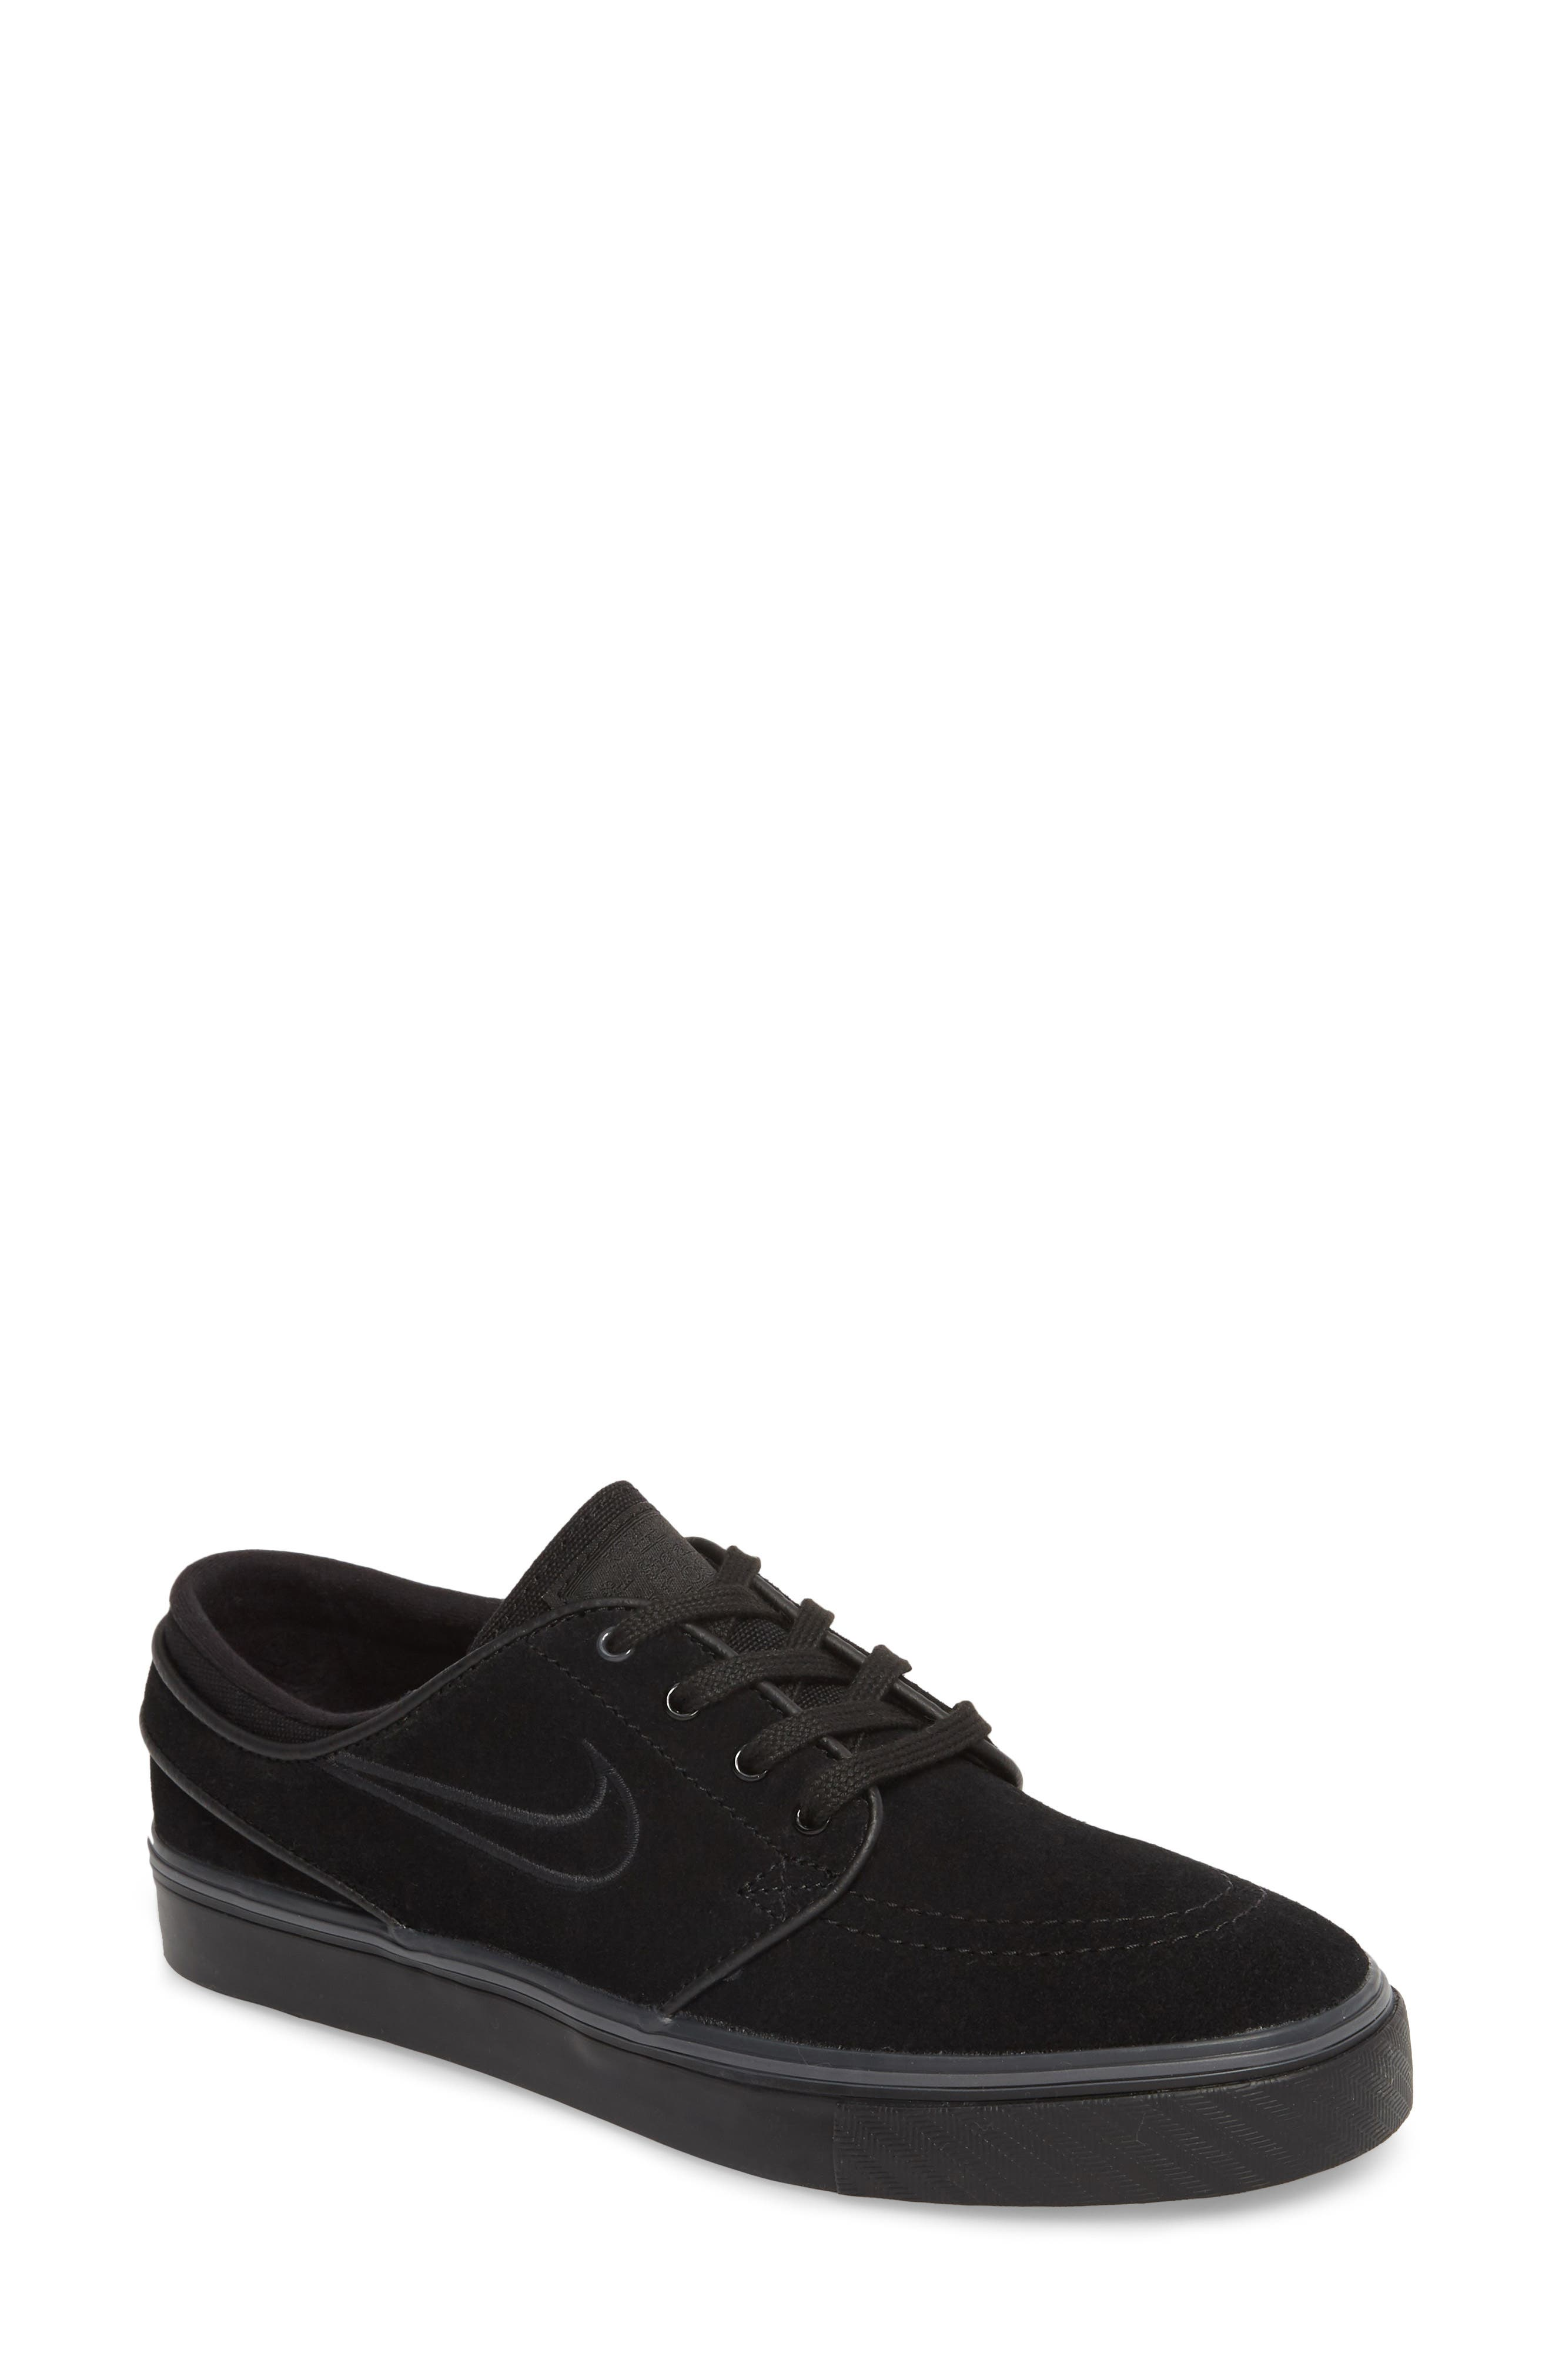 SB Air Zoom Stefan Janoski Skate Sneaker,                             Main thumbnail 1, color,                             Black/ Black/ Black